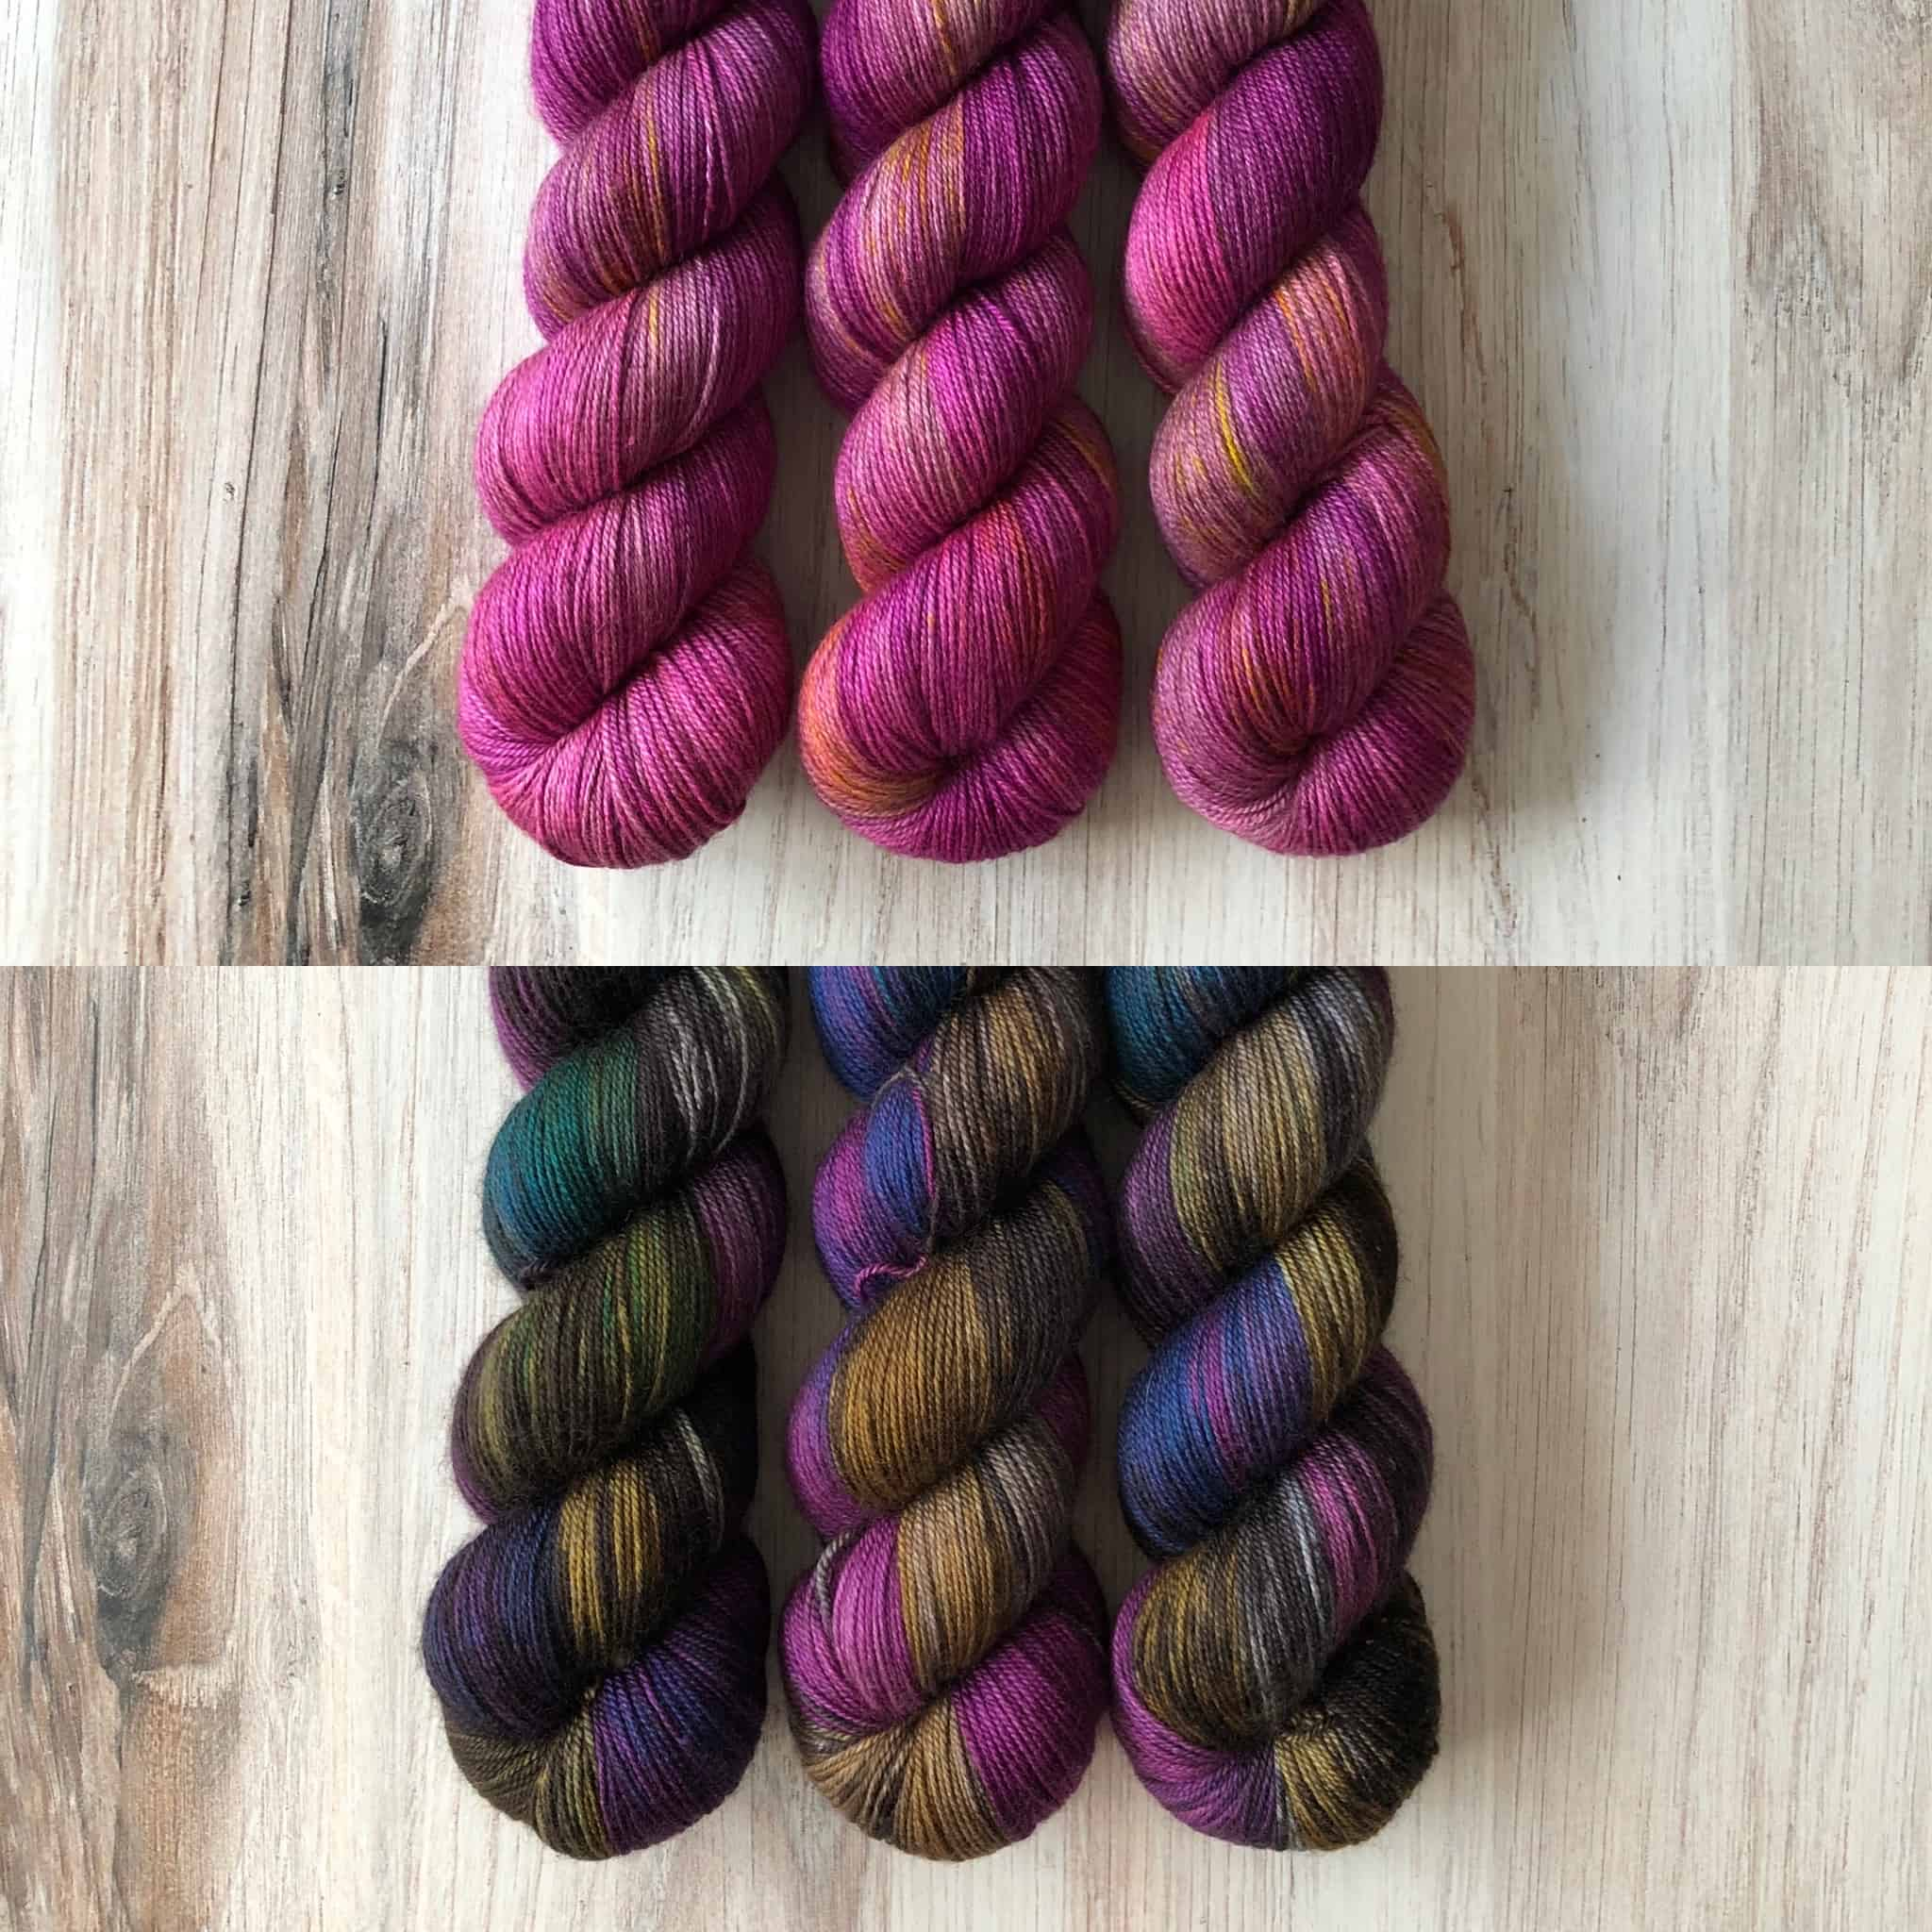 Pink and black and gold speckled yarn.